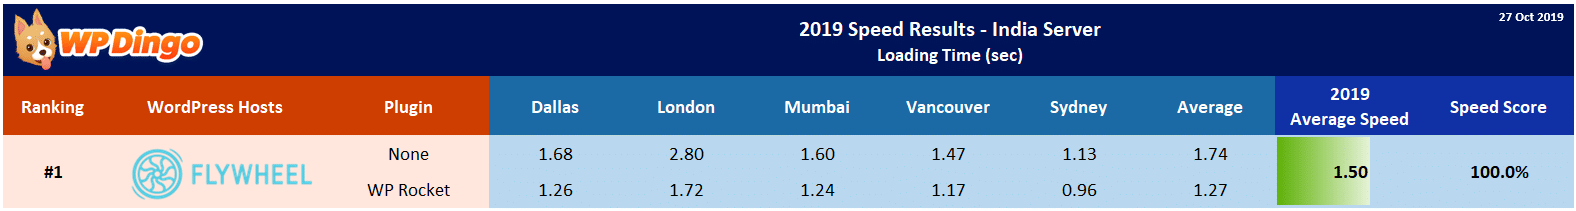 2019 Flywheel Speed Table - India Server